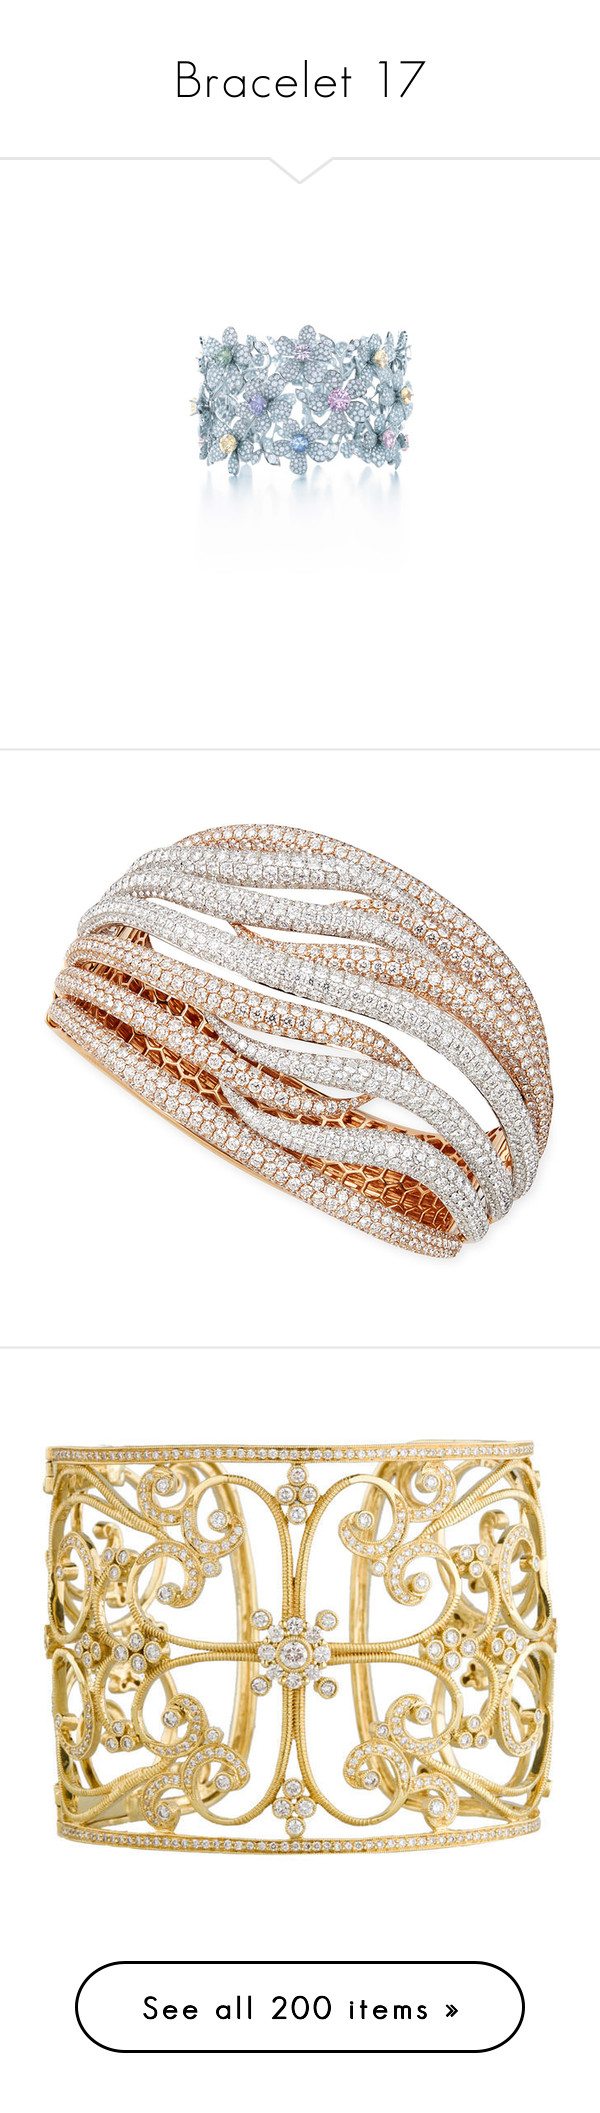 """Bracelet 17"" by rin-kute ❤ liked on Polyvore featuring jewelry, bracelets, tiffany co jewellery, tiffany co jewelry, gioielli, rings, pave diamond bangle, rose gold bangle, bracelets bangle and white cuff bracelet"